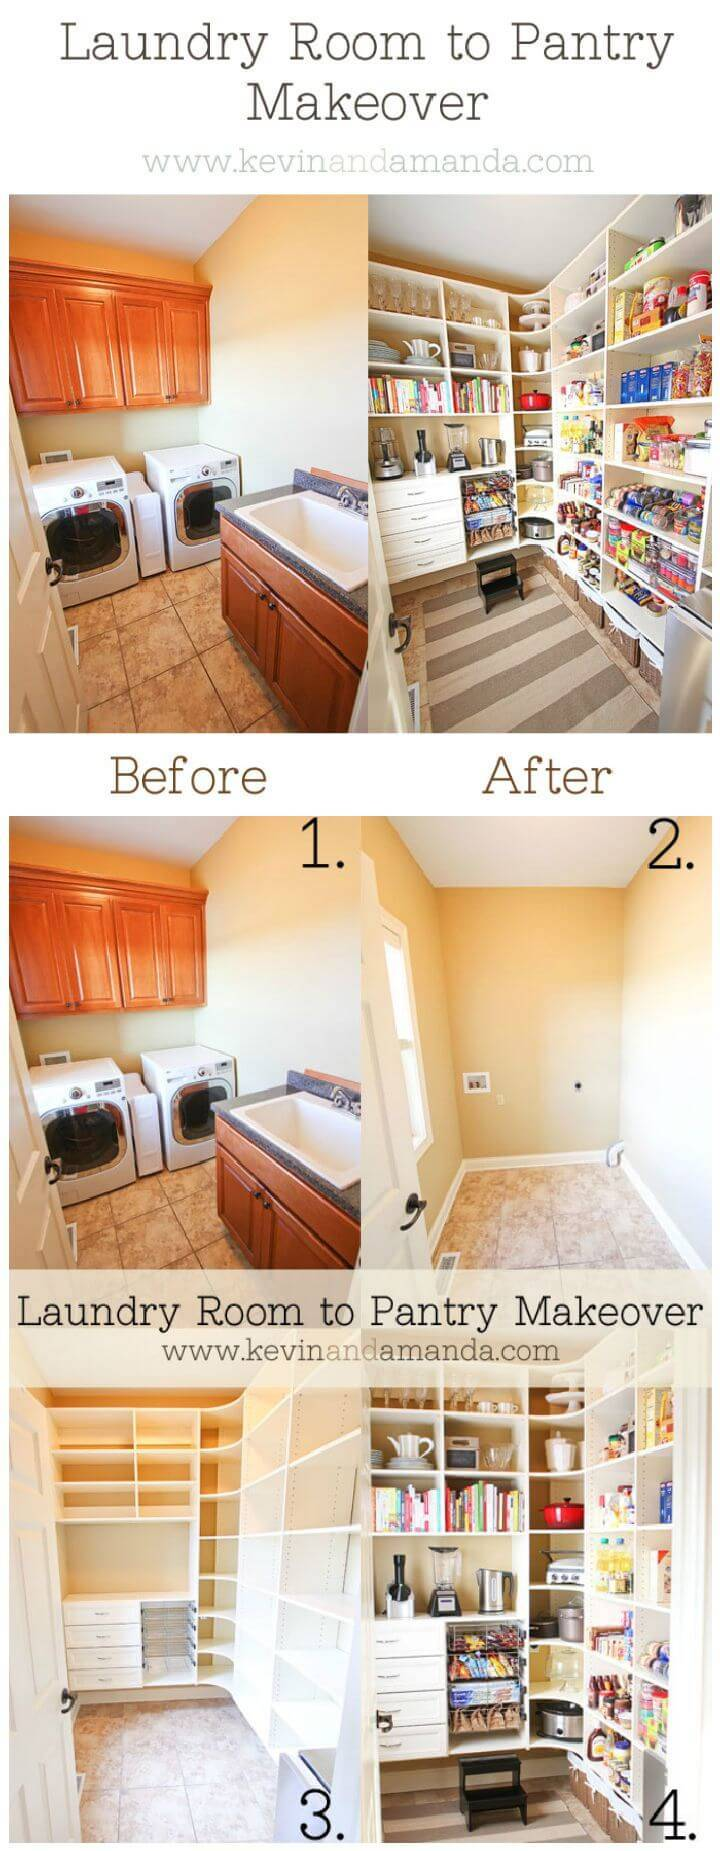 Pantry Makeover Before And After Photos!